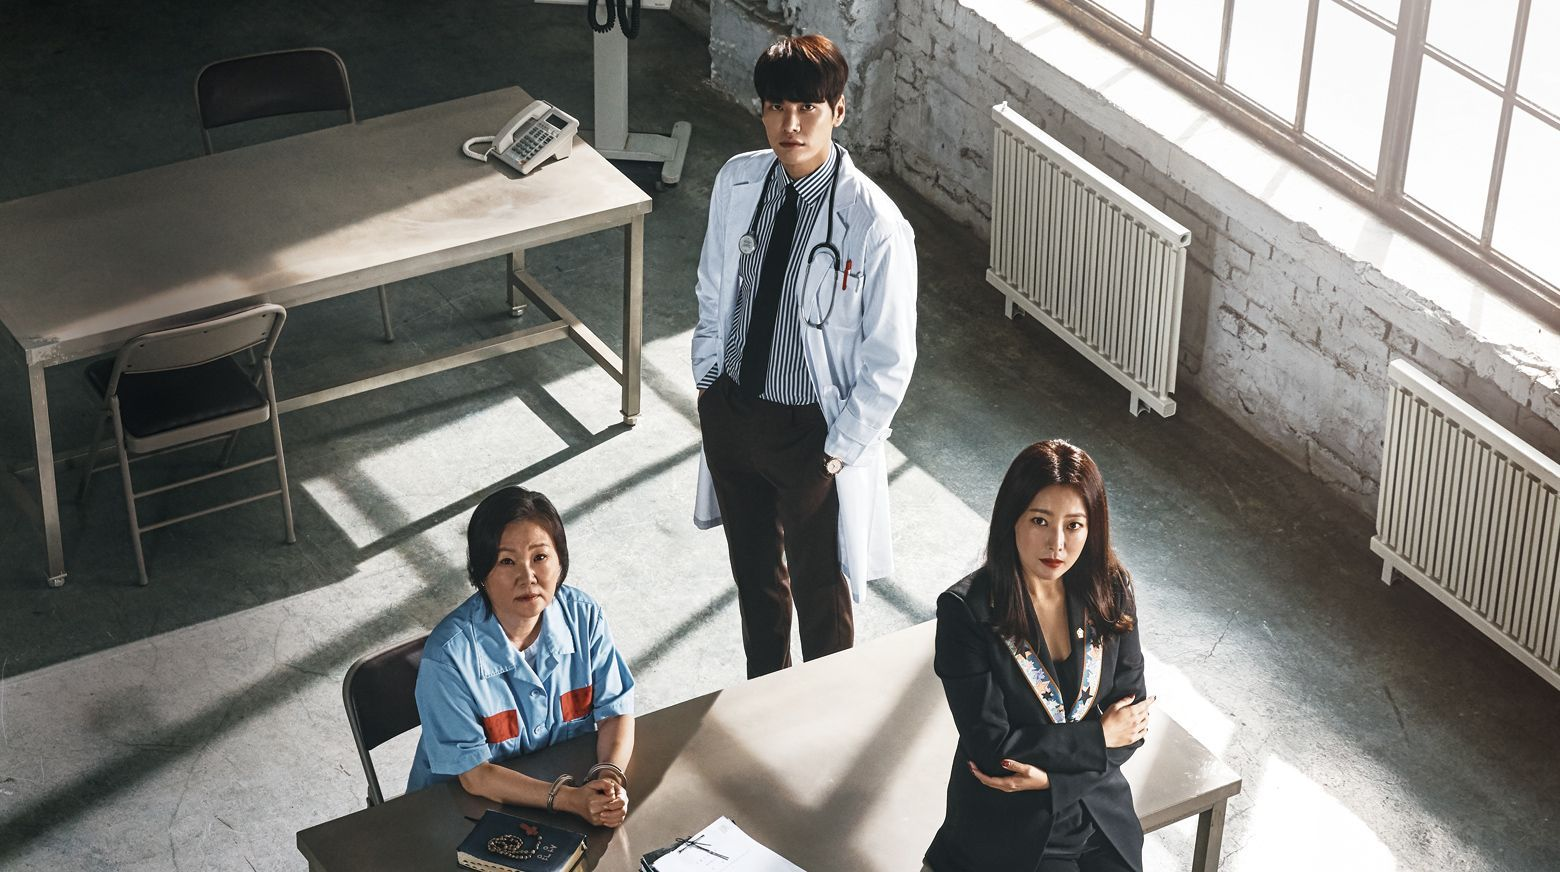 Room No 9 Ep 1 Eng Sub 2018 Korea Drama Online Server Vip Room N9 Is About A Lawyer Named Eul Ji Hae Yi Whose Body Is Switched With A Prisoner Residing